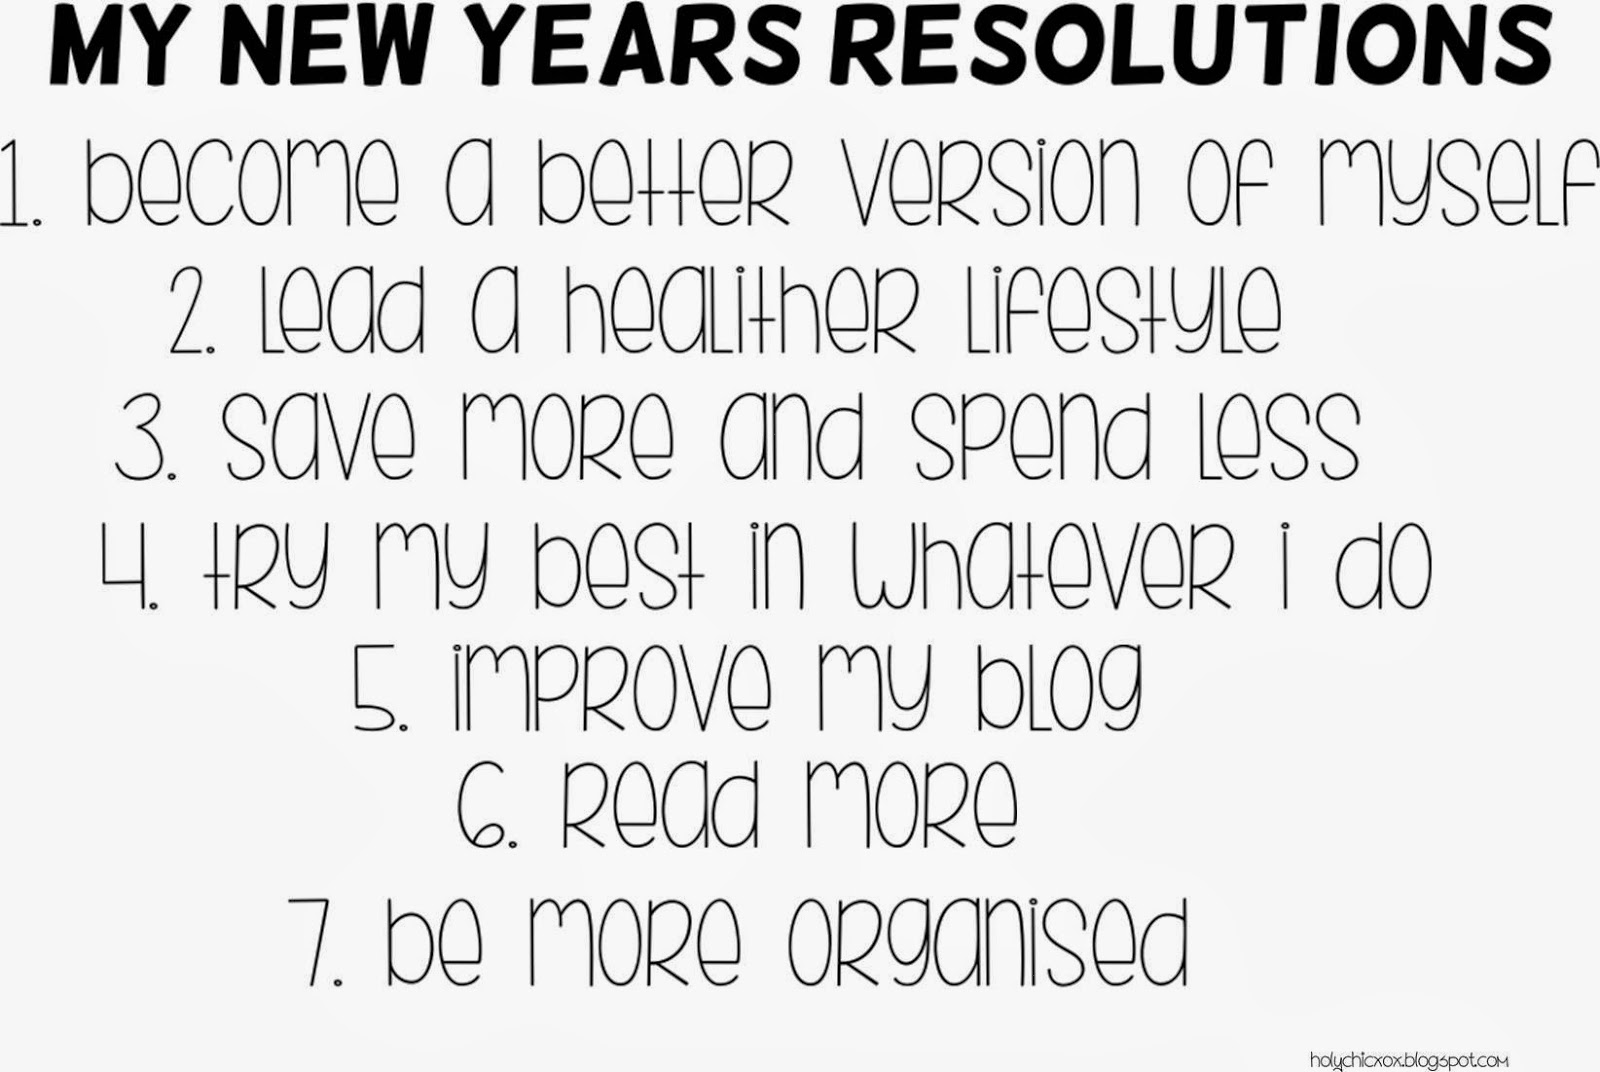 Essay on new year resolution essay on high school to write essays essay on my favourite poet allama iqbal pdf my favourite poet essay writing help london writing new year s resolutions spiritdancerdesigns Choice Image